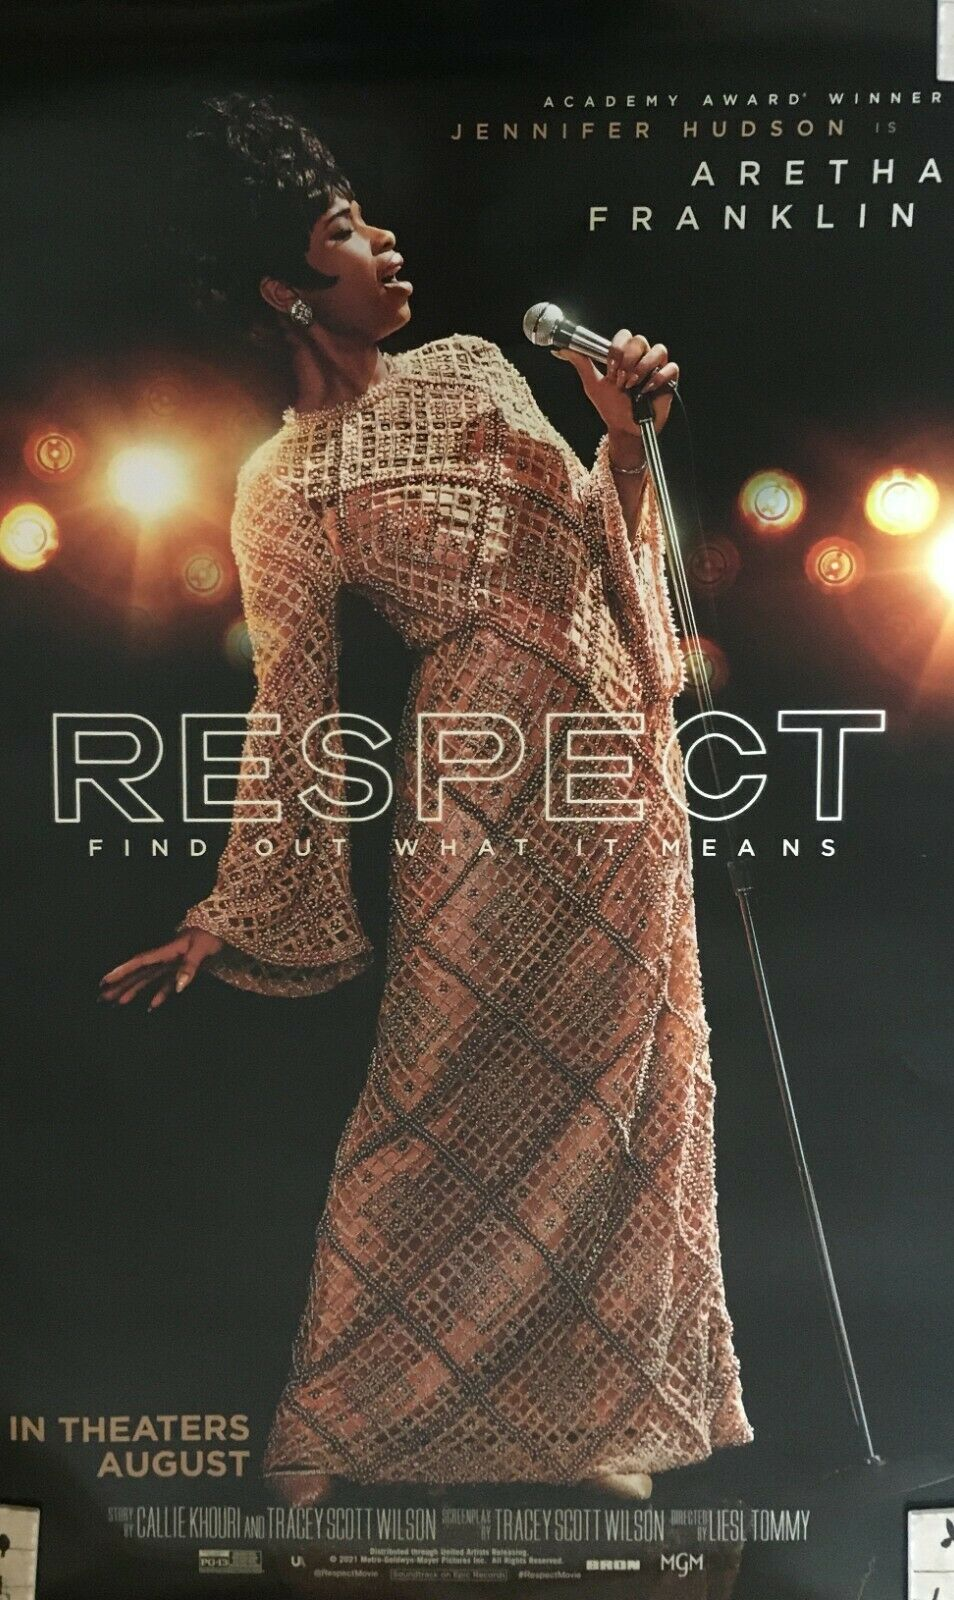 RESPECT 27x40 Original Theater Release Double Sided Movie Poster Aretha Franklin - $19.99